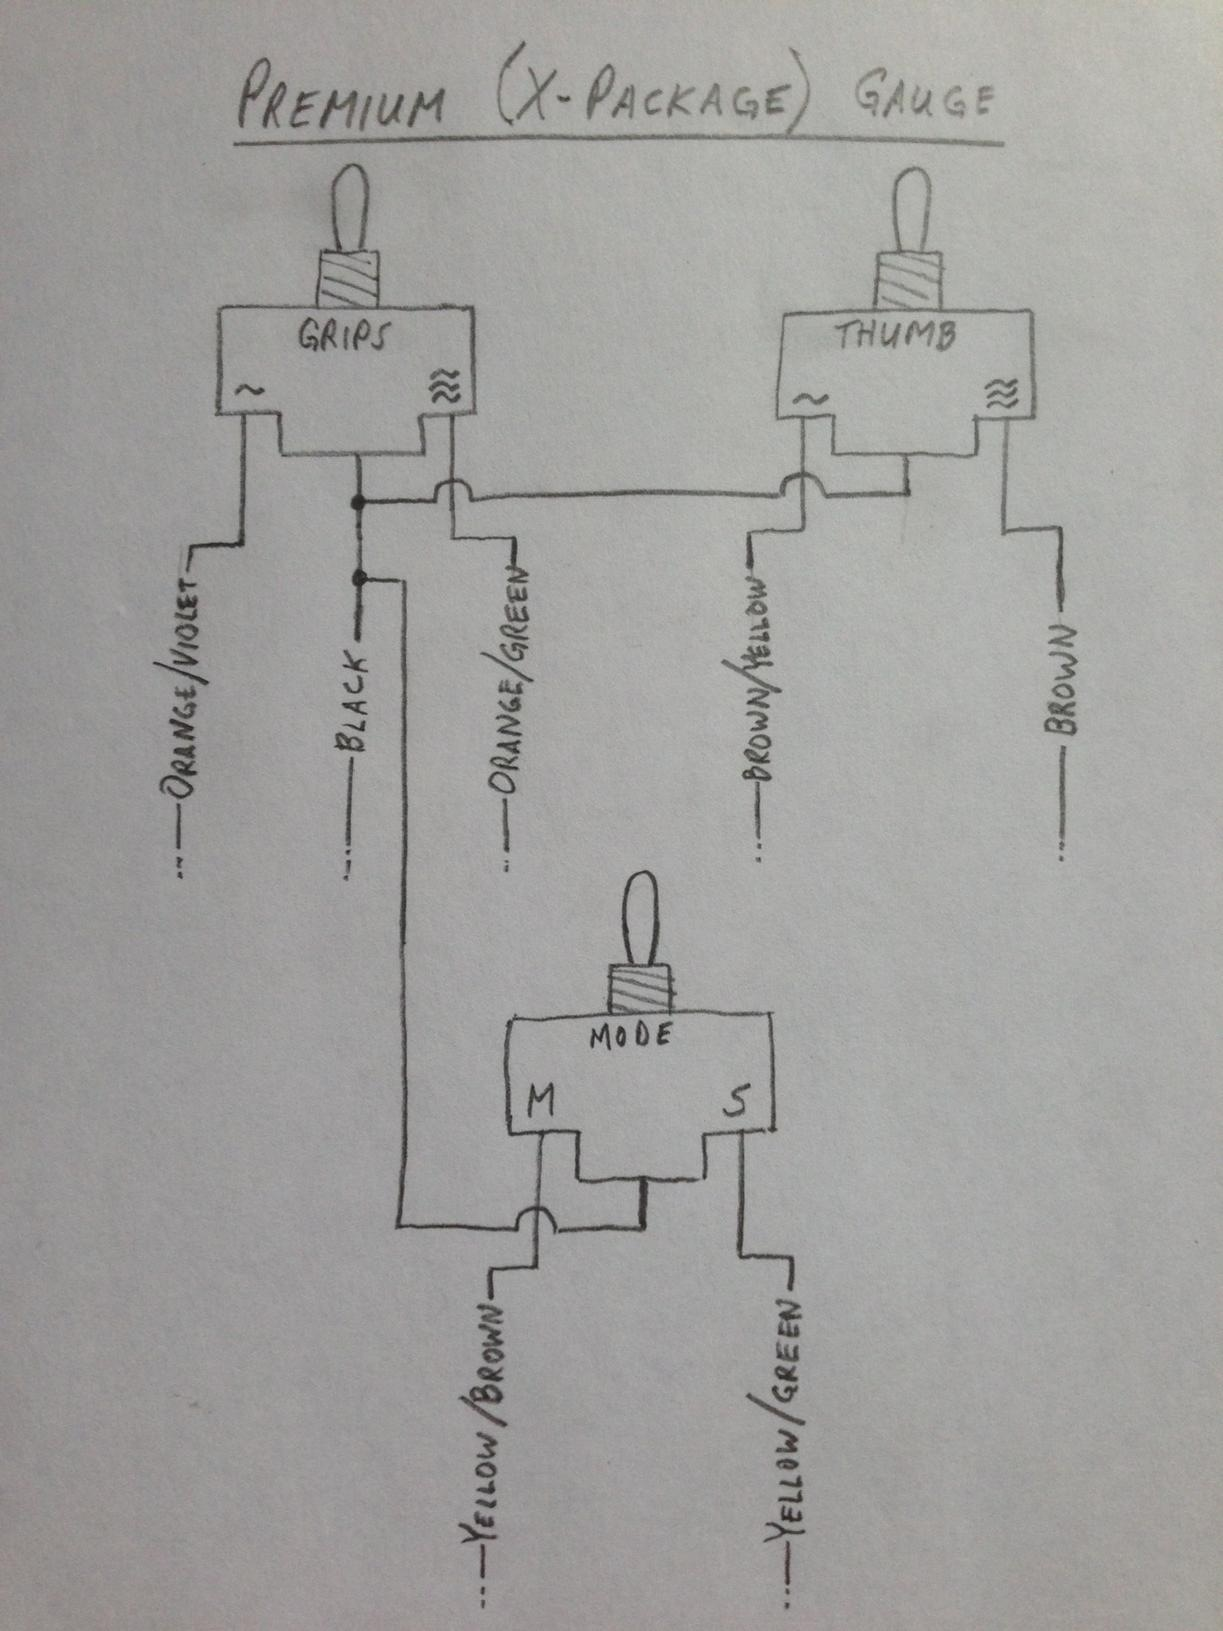 Xp And Xm Wiring Diagrams For New Switches - Rev-xp    Xm Chassis - Mountain Sleds